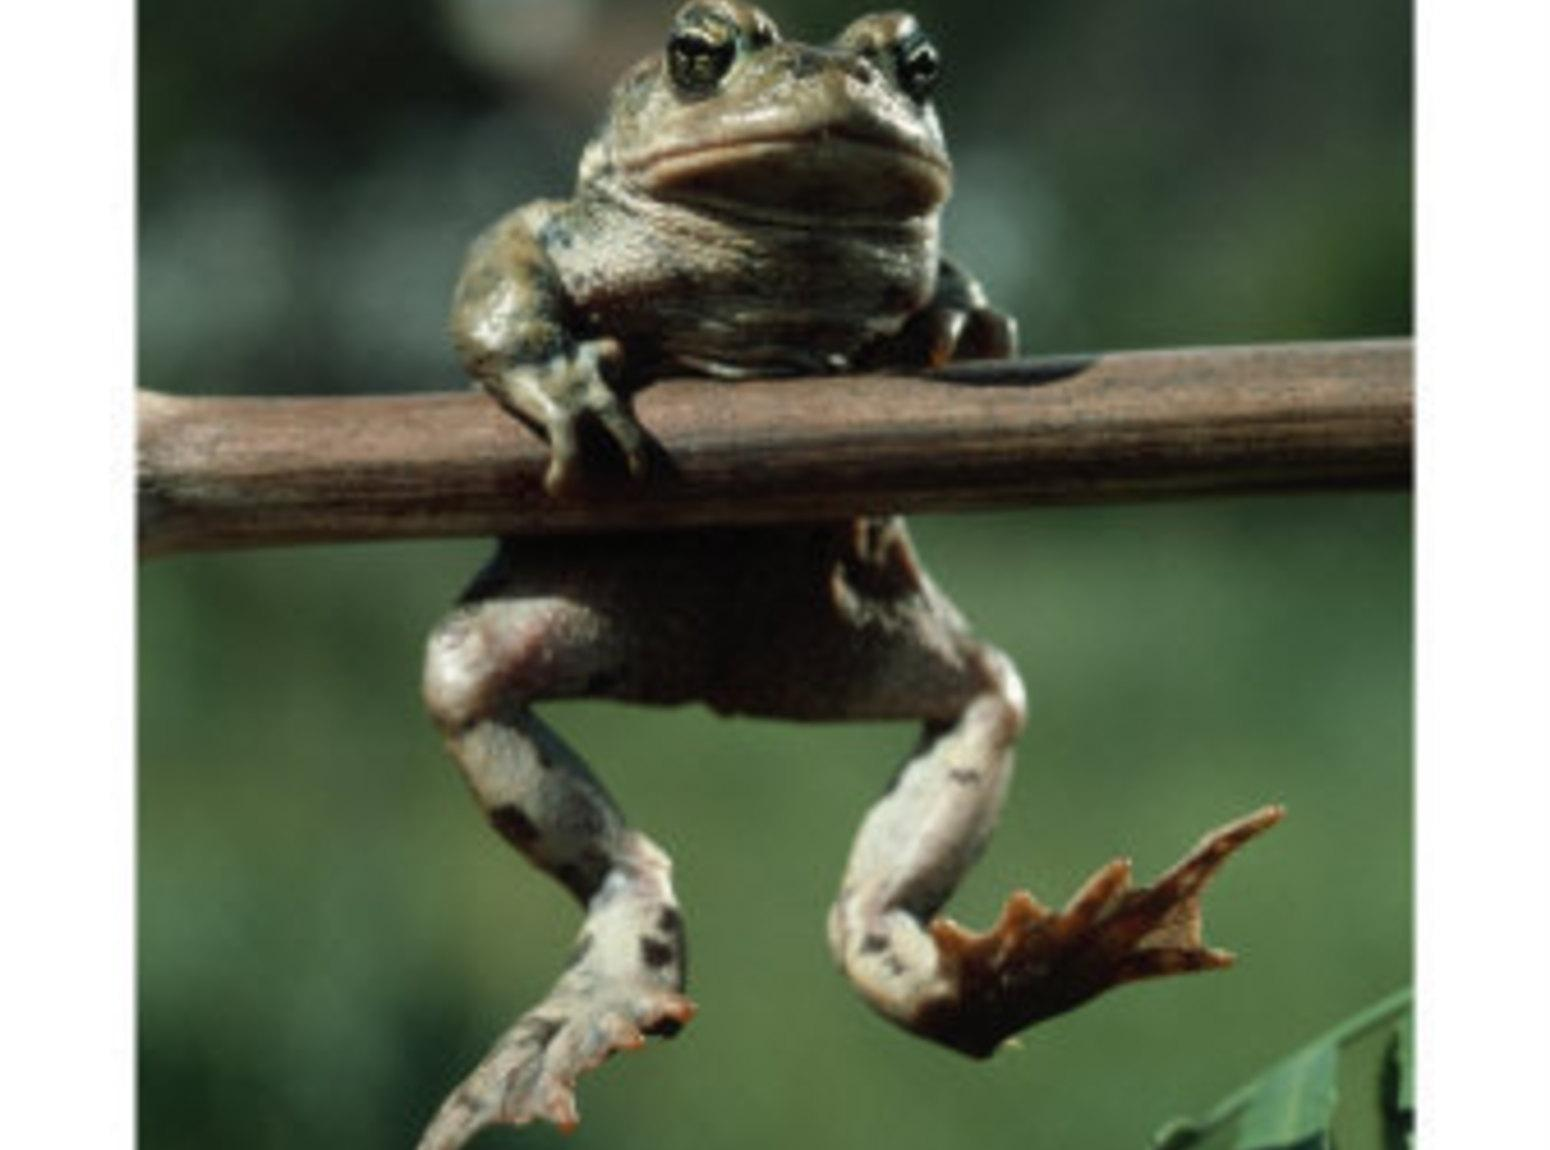 A frog with legs spread and pussy ready for cock 5